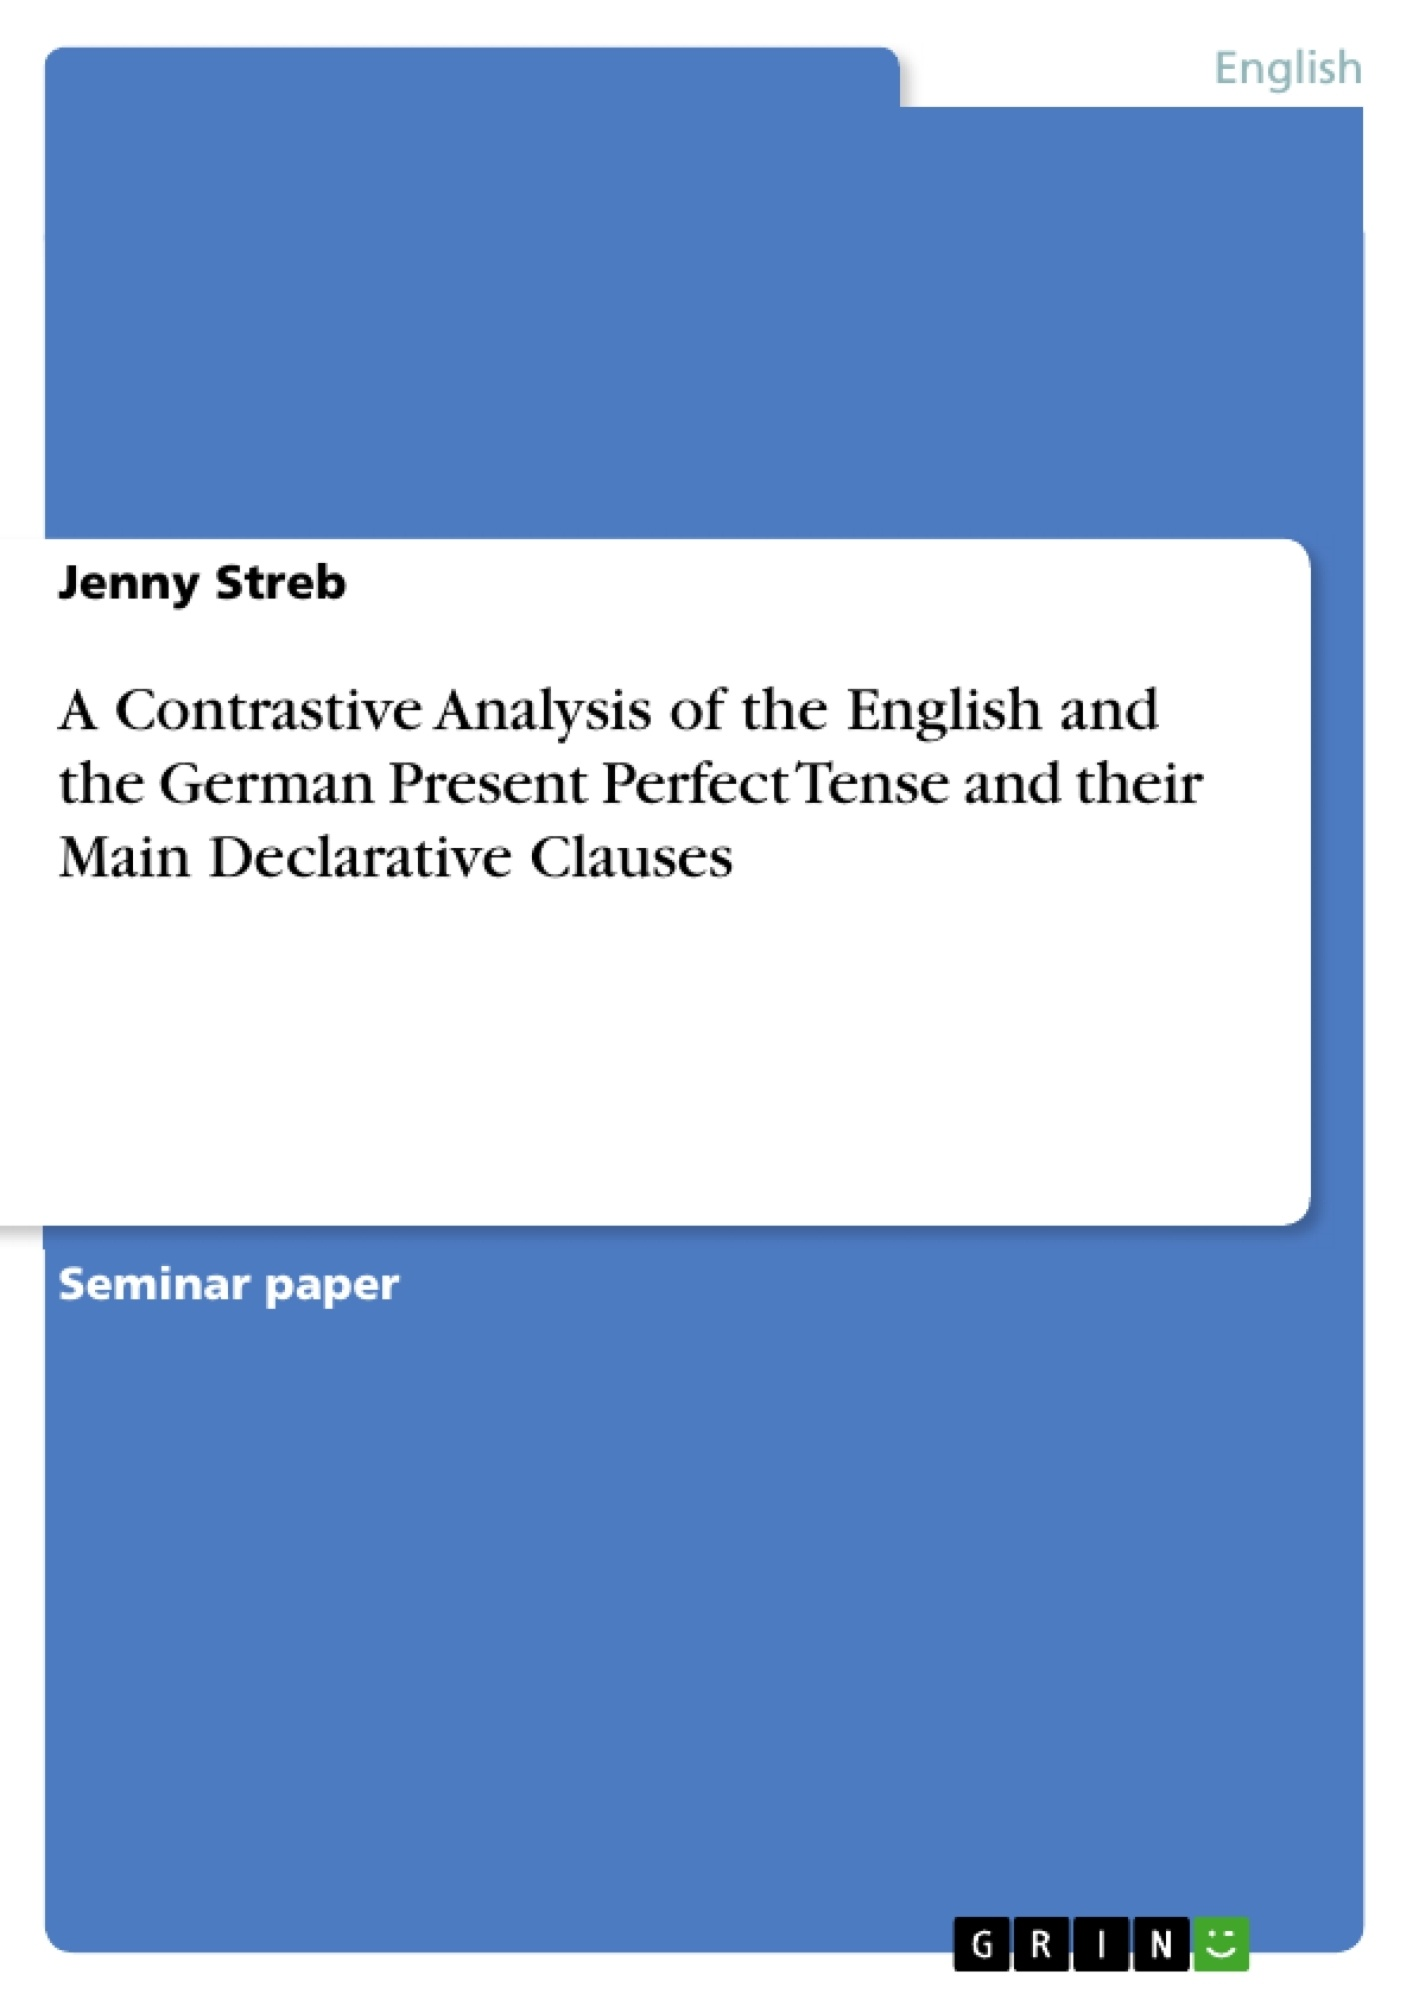 Title: A Contrastive Analysis of the English and the German Present Perfect Tense and their Main Declarative Clauses